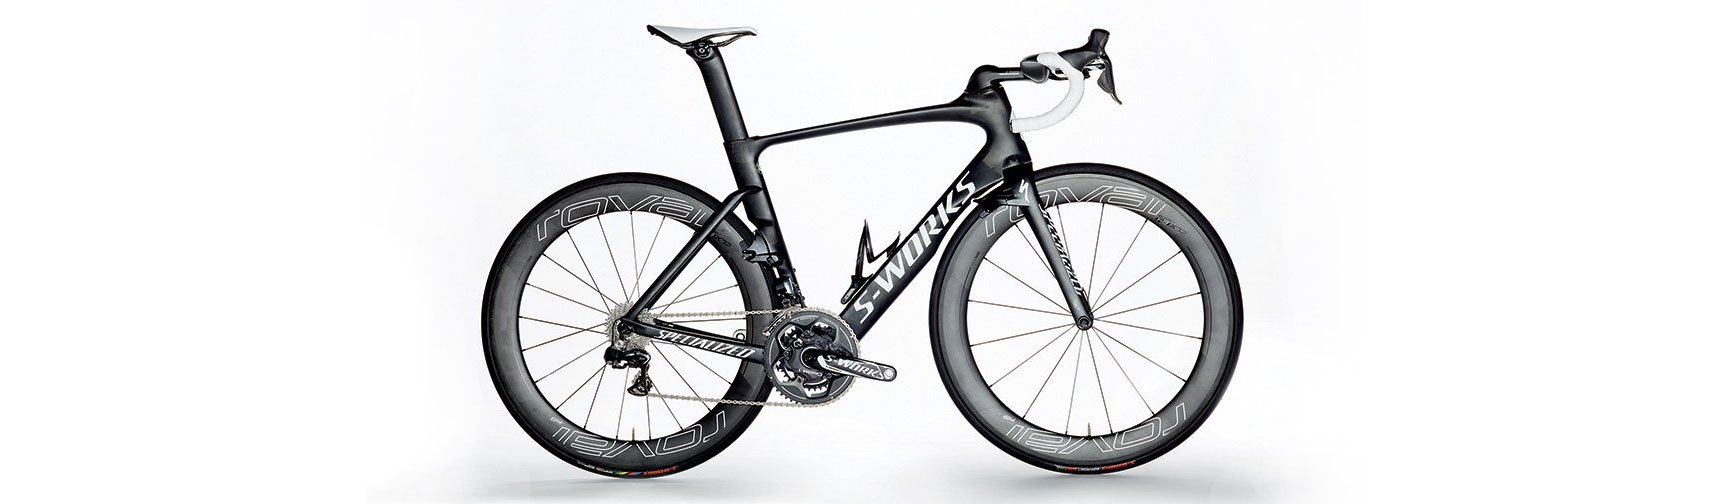 Product-Launch-Video-Thumbnail-of-Specialized-S-Works-Venge